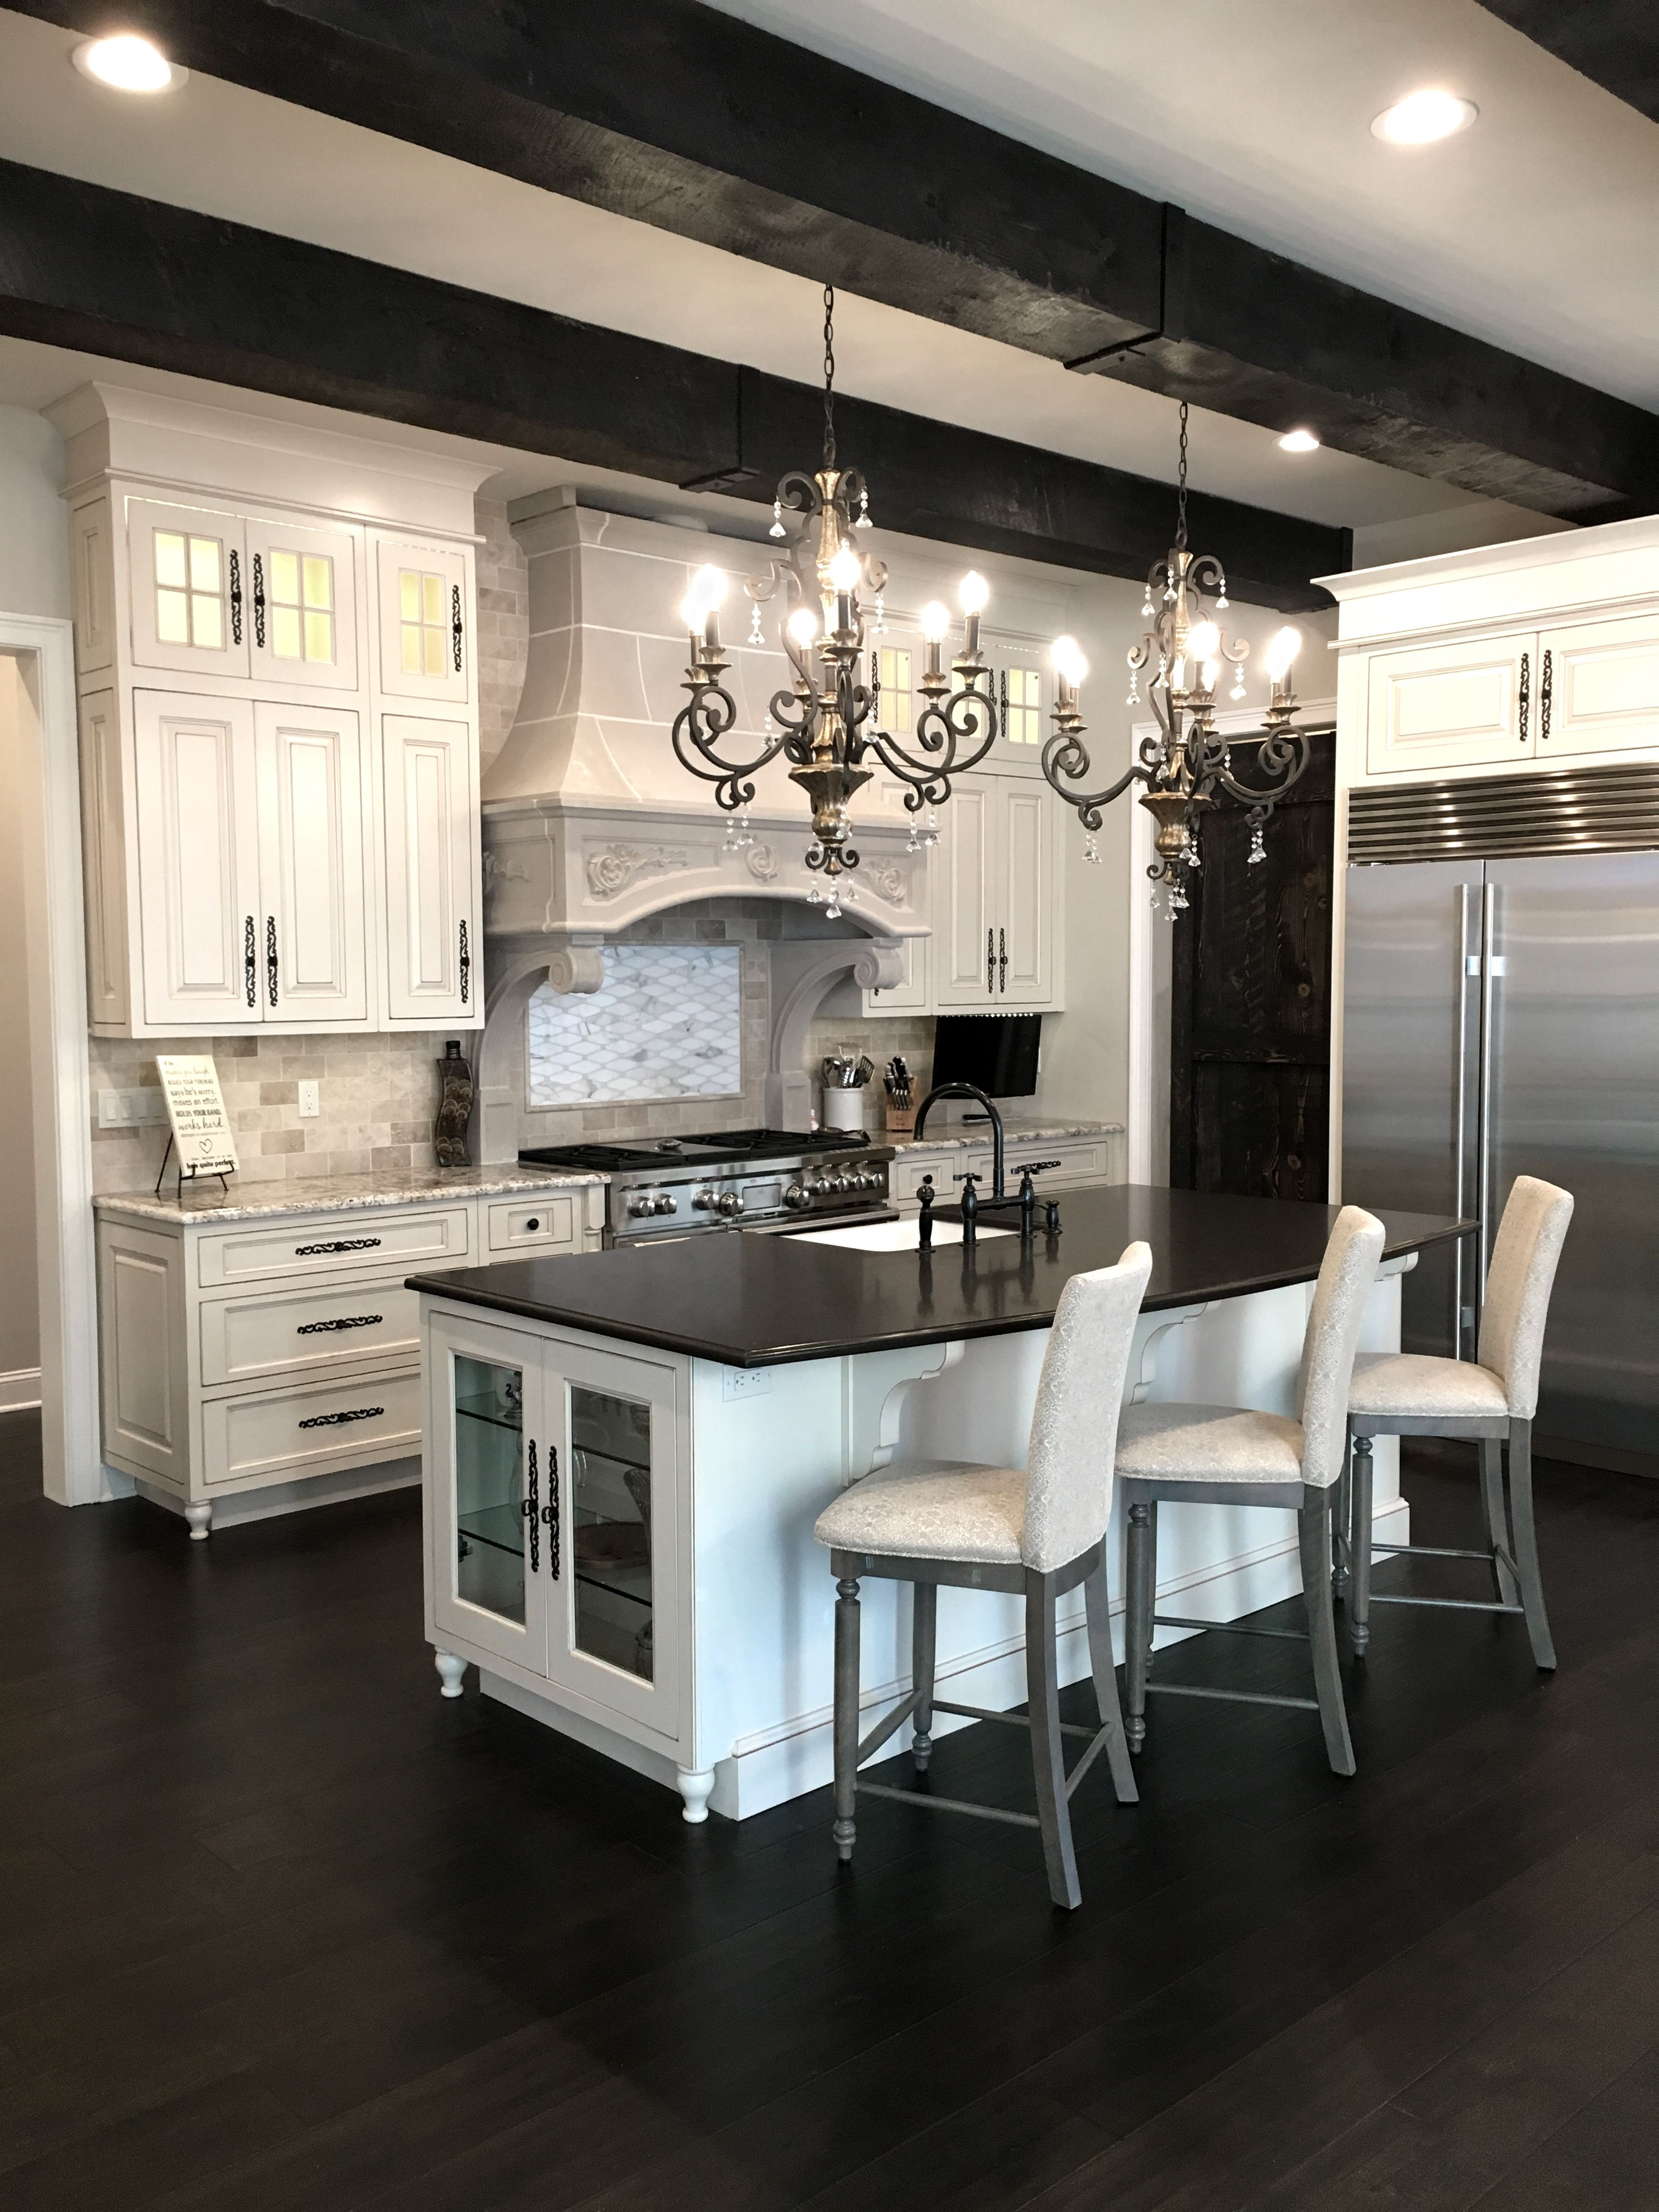 French Country Kitchen Wood Beam Ceiling Kitchen Island